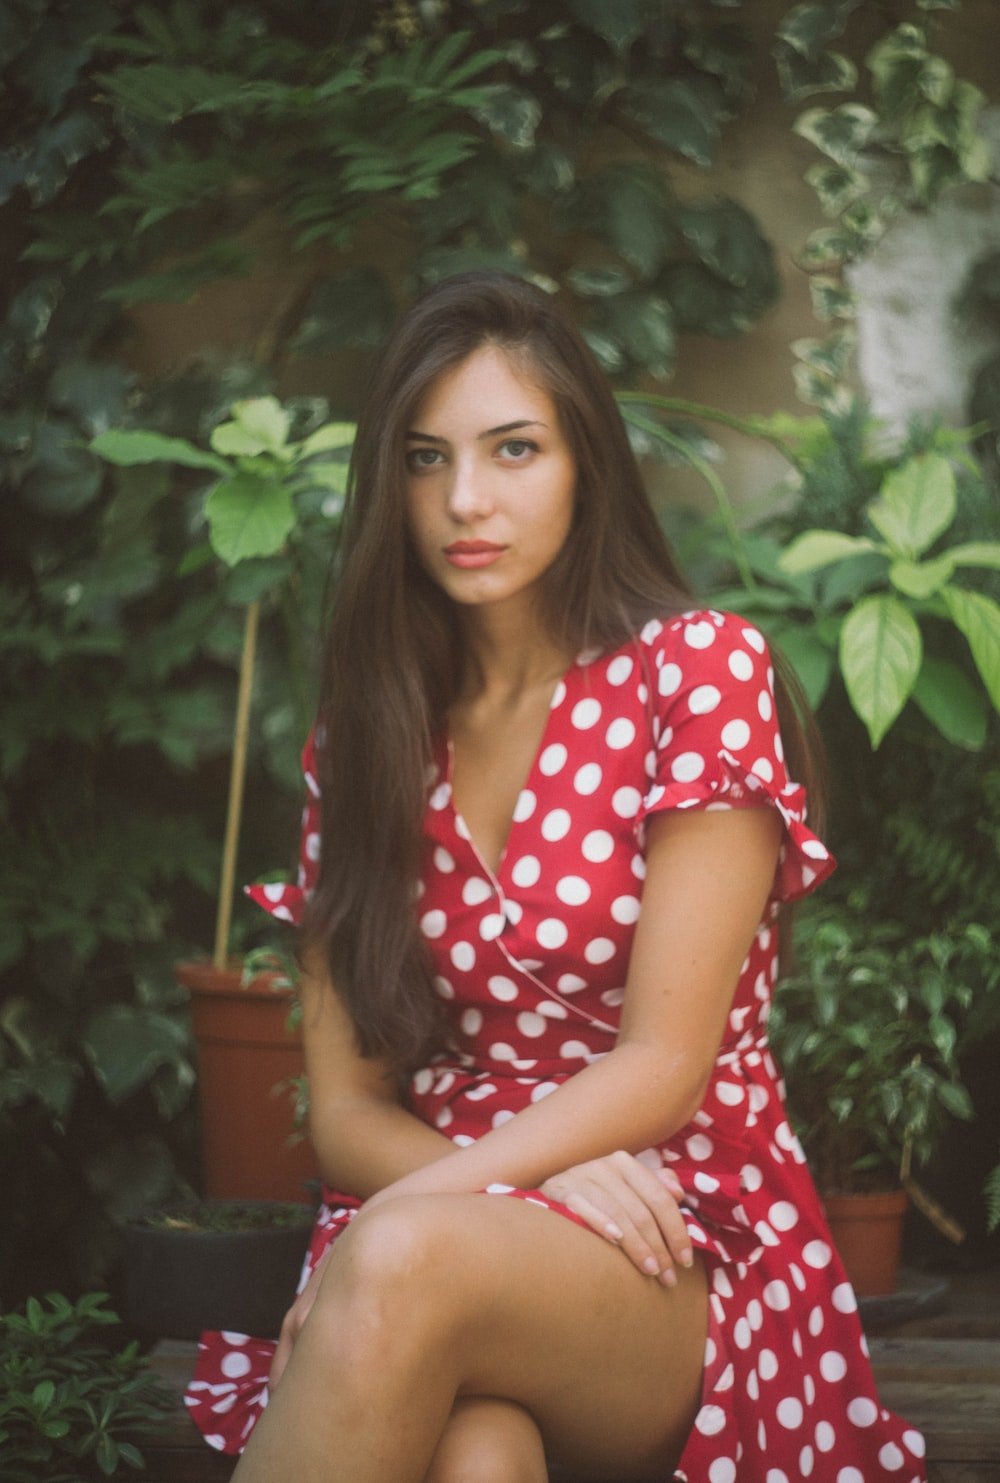 woman sitting in front of leafed plants